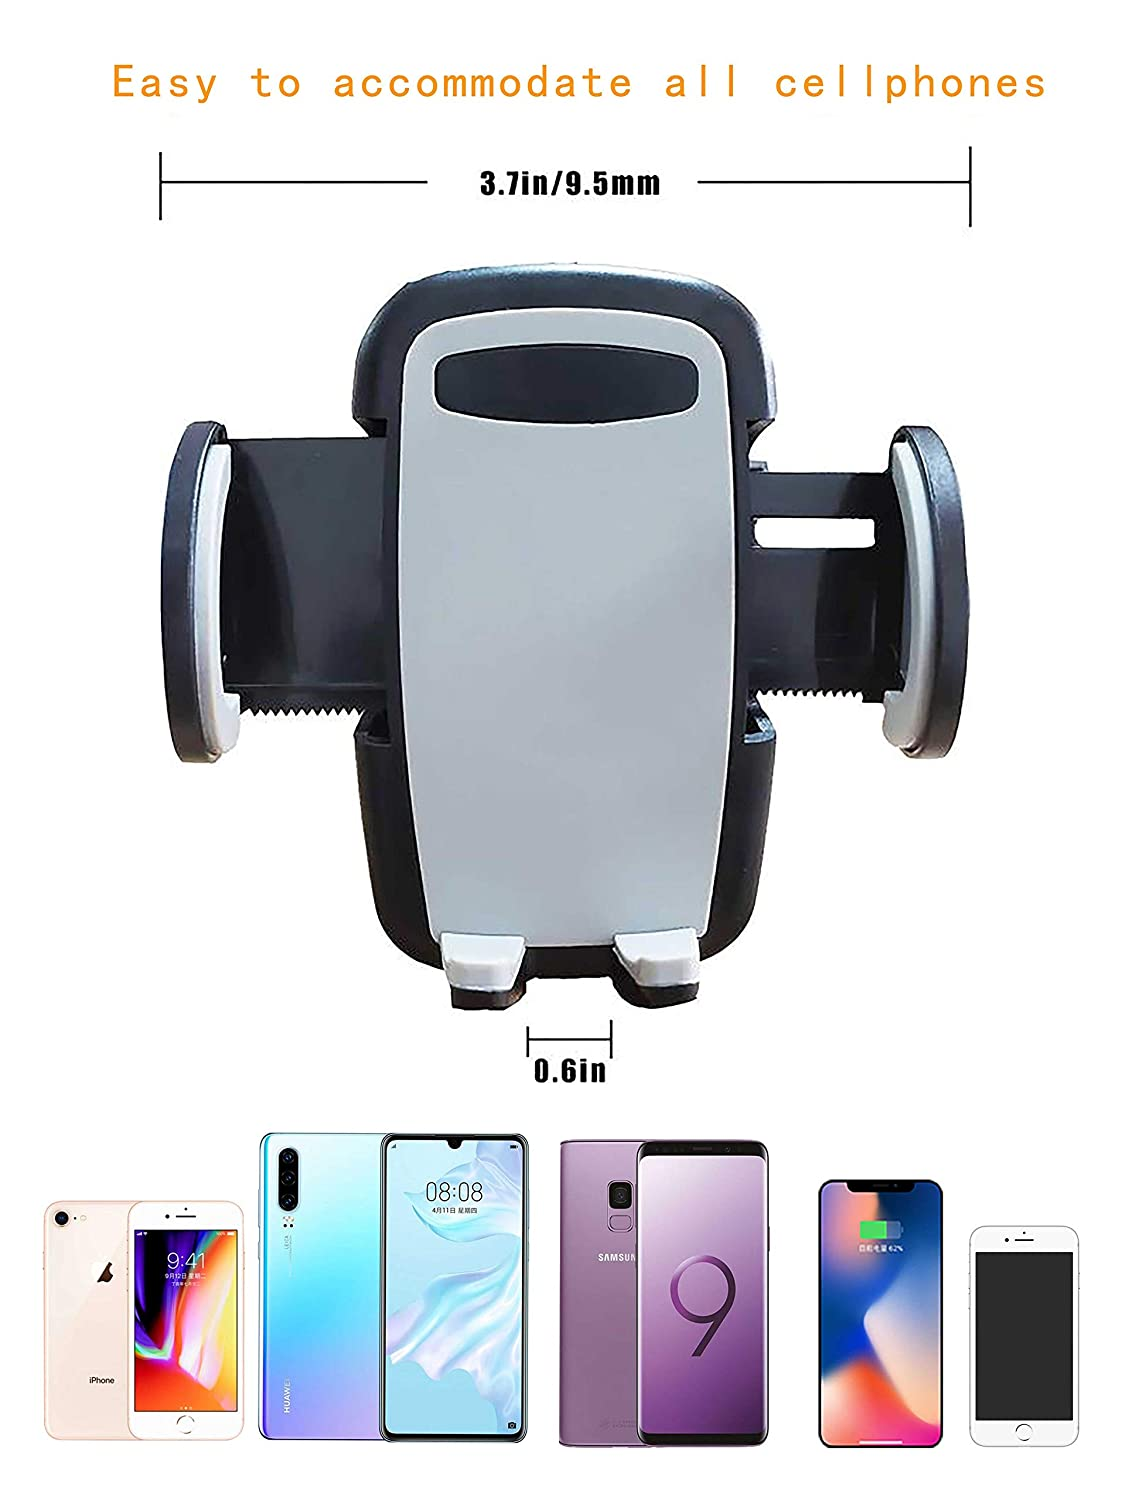 Compatible for iPhone Xs//XS MAX//XR//X 8//8 Plus//7//SE //6s //6 Plus //6 Cell Phone Holder for Car Air Vent Oternal Car Phone Mount Samsung Galaxy S6//S5//S4 Sony Nokia and More 2-Level Adjustable Clamp